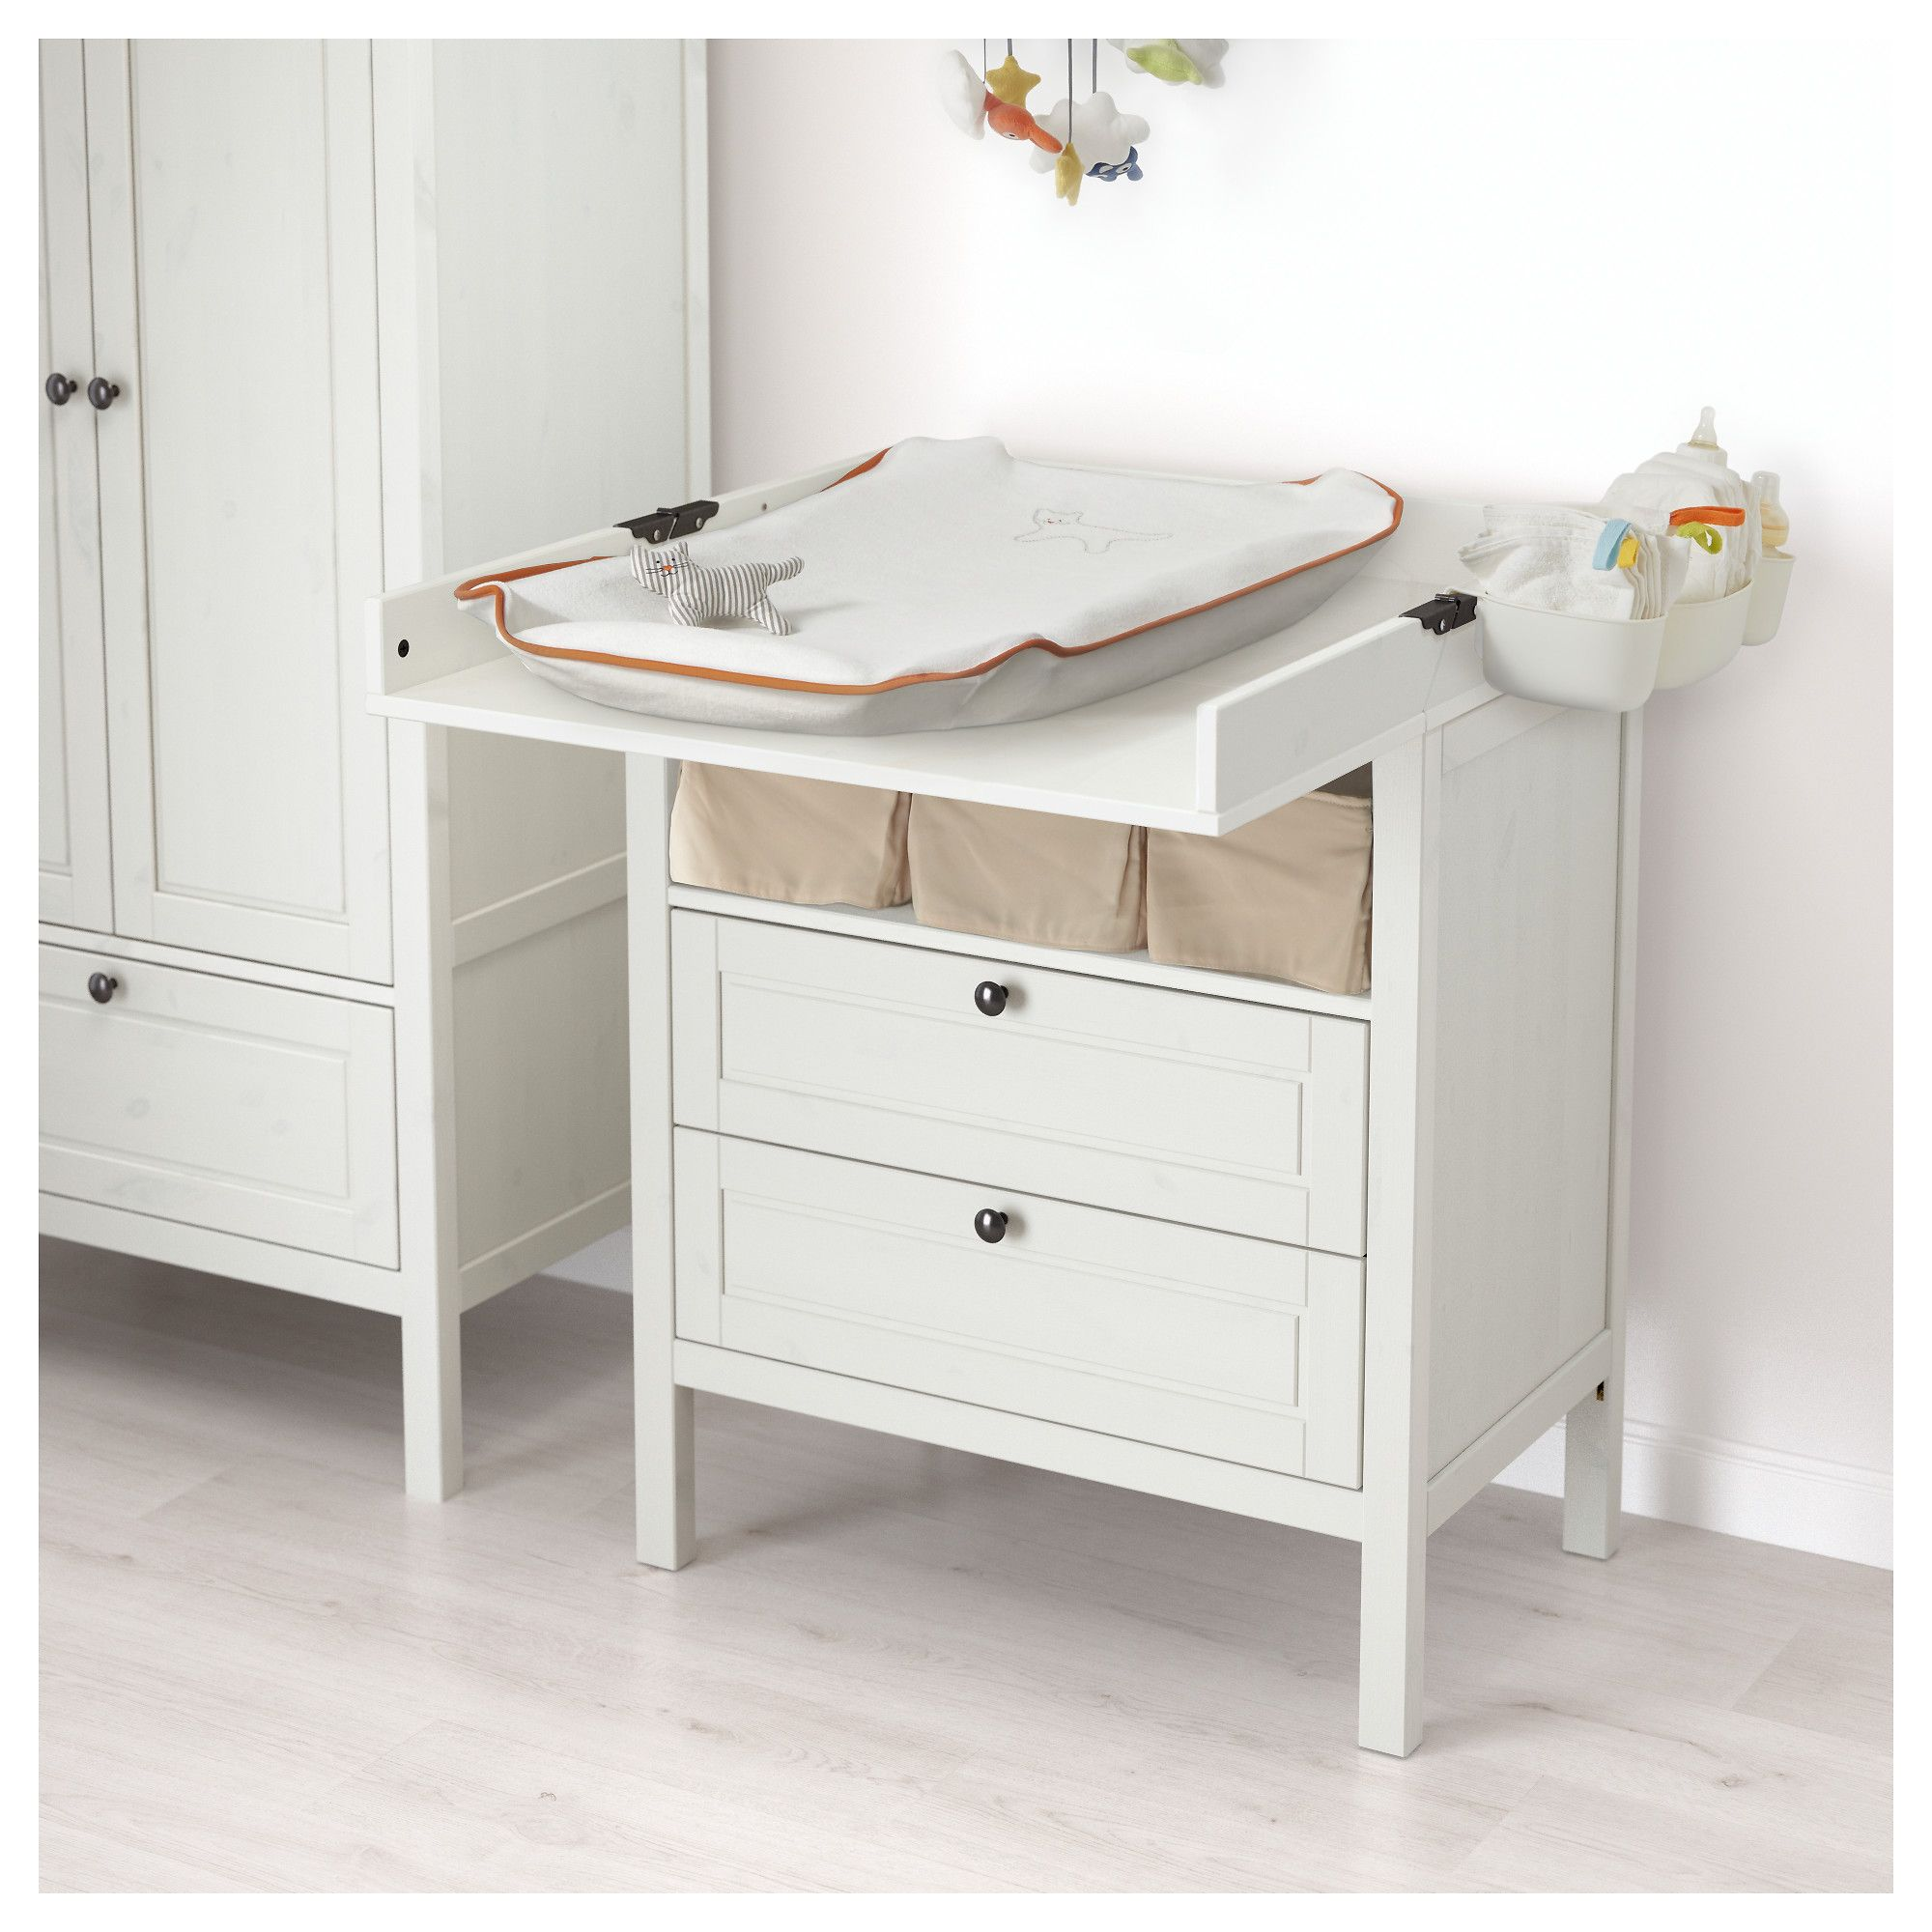 SUNDVIK Changing table/chest of drawers White